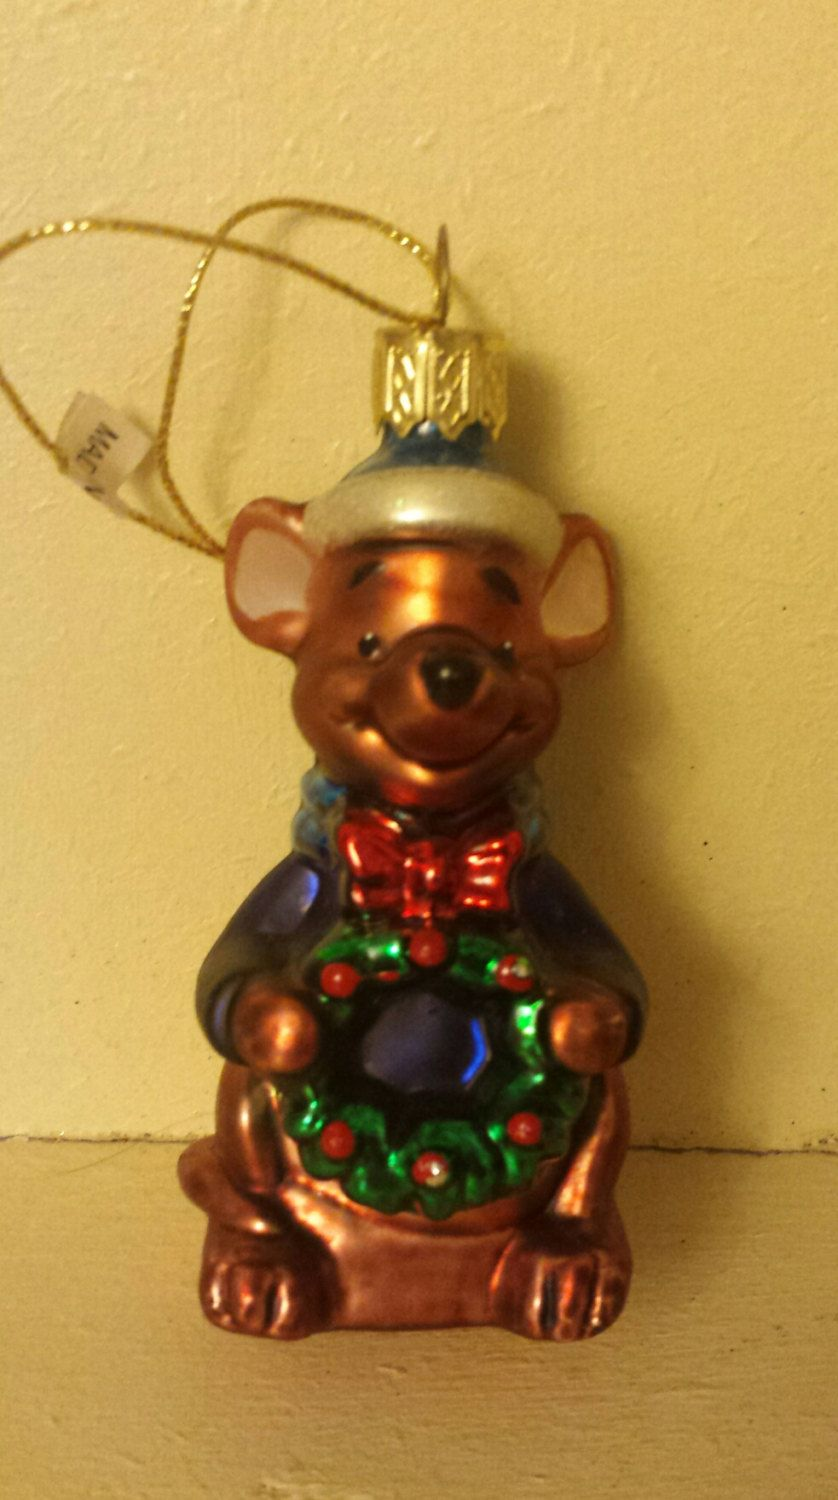 Disney Winnie the Pooh little Roo Blown Glass Christmas Ornament by ukbeadsonline on Etsy